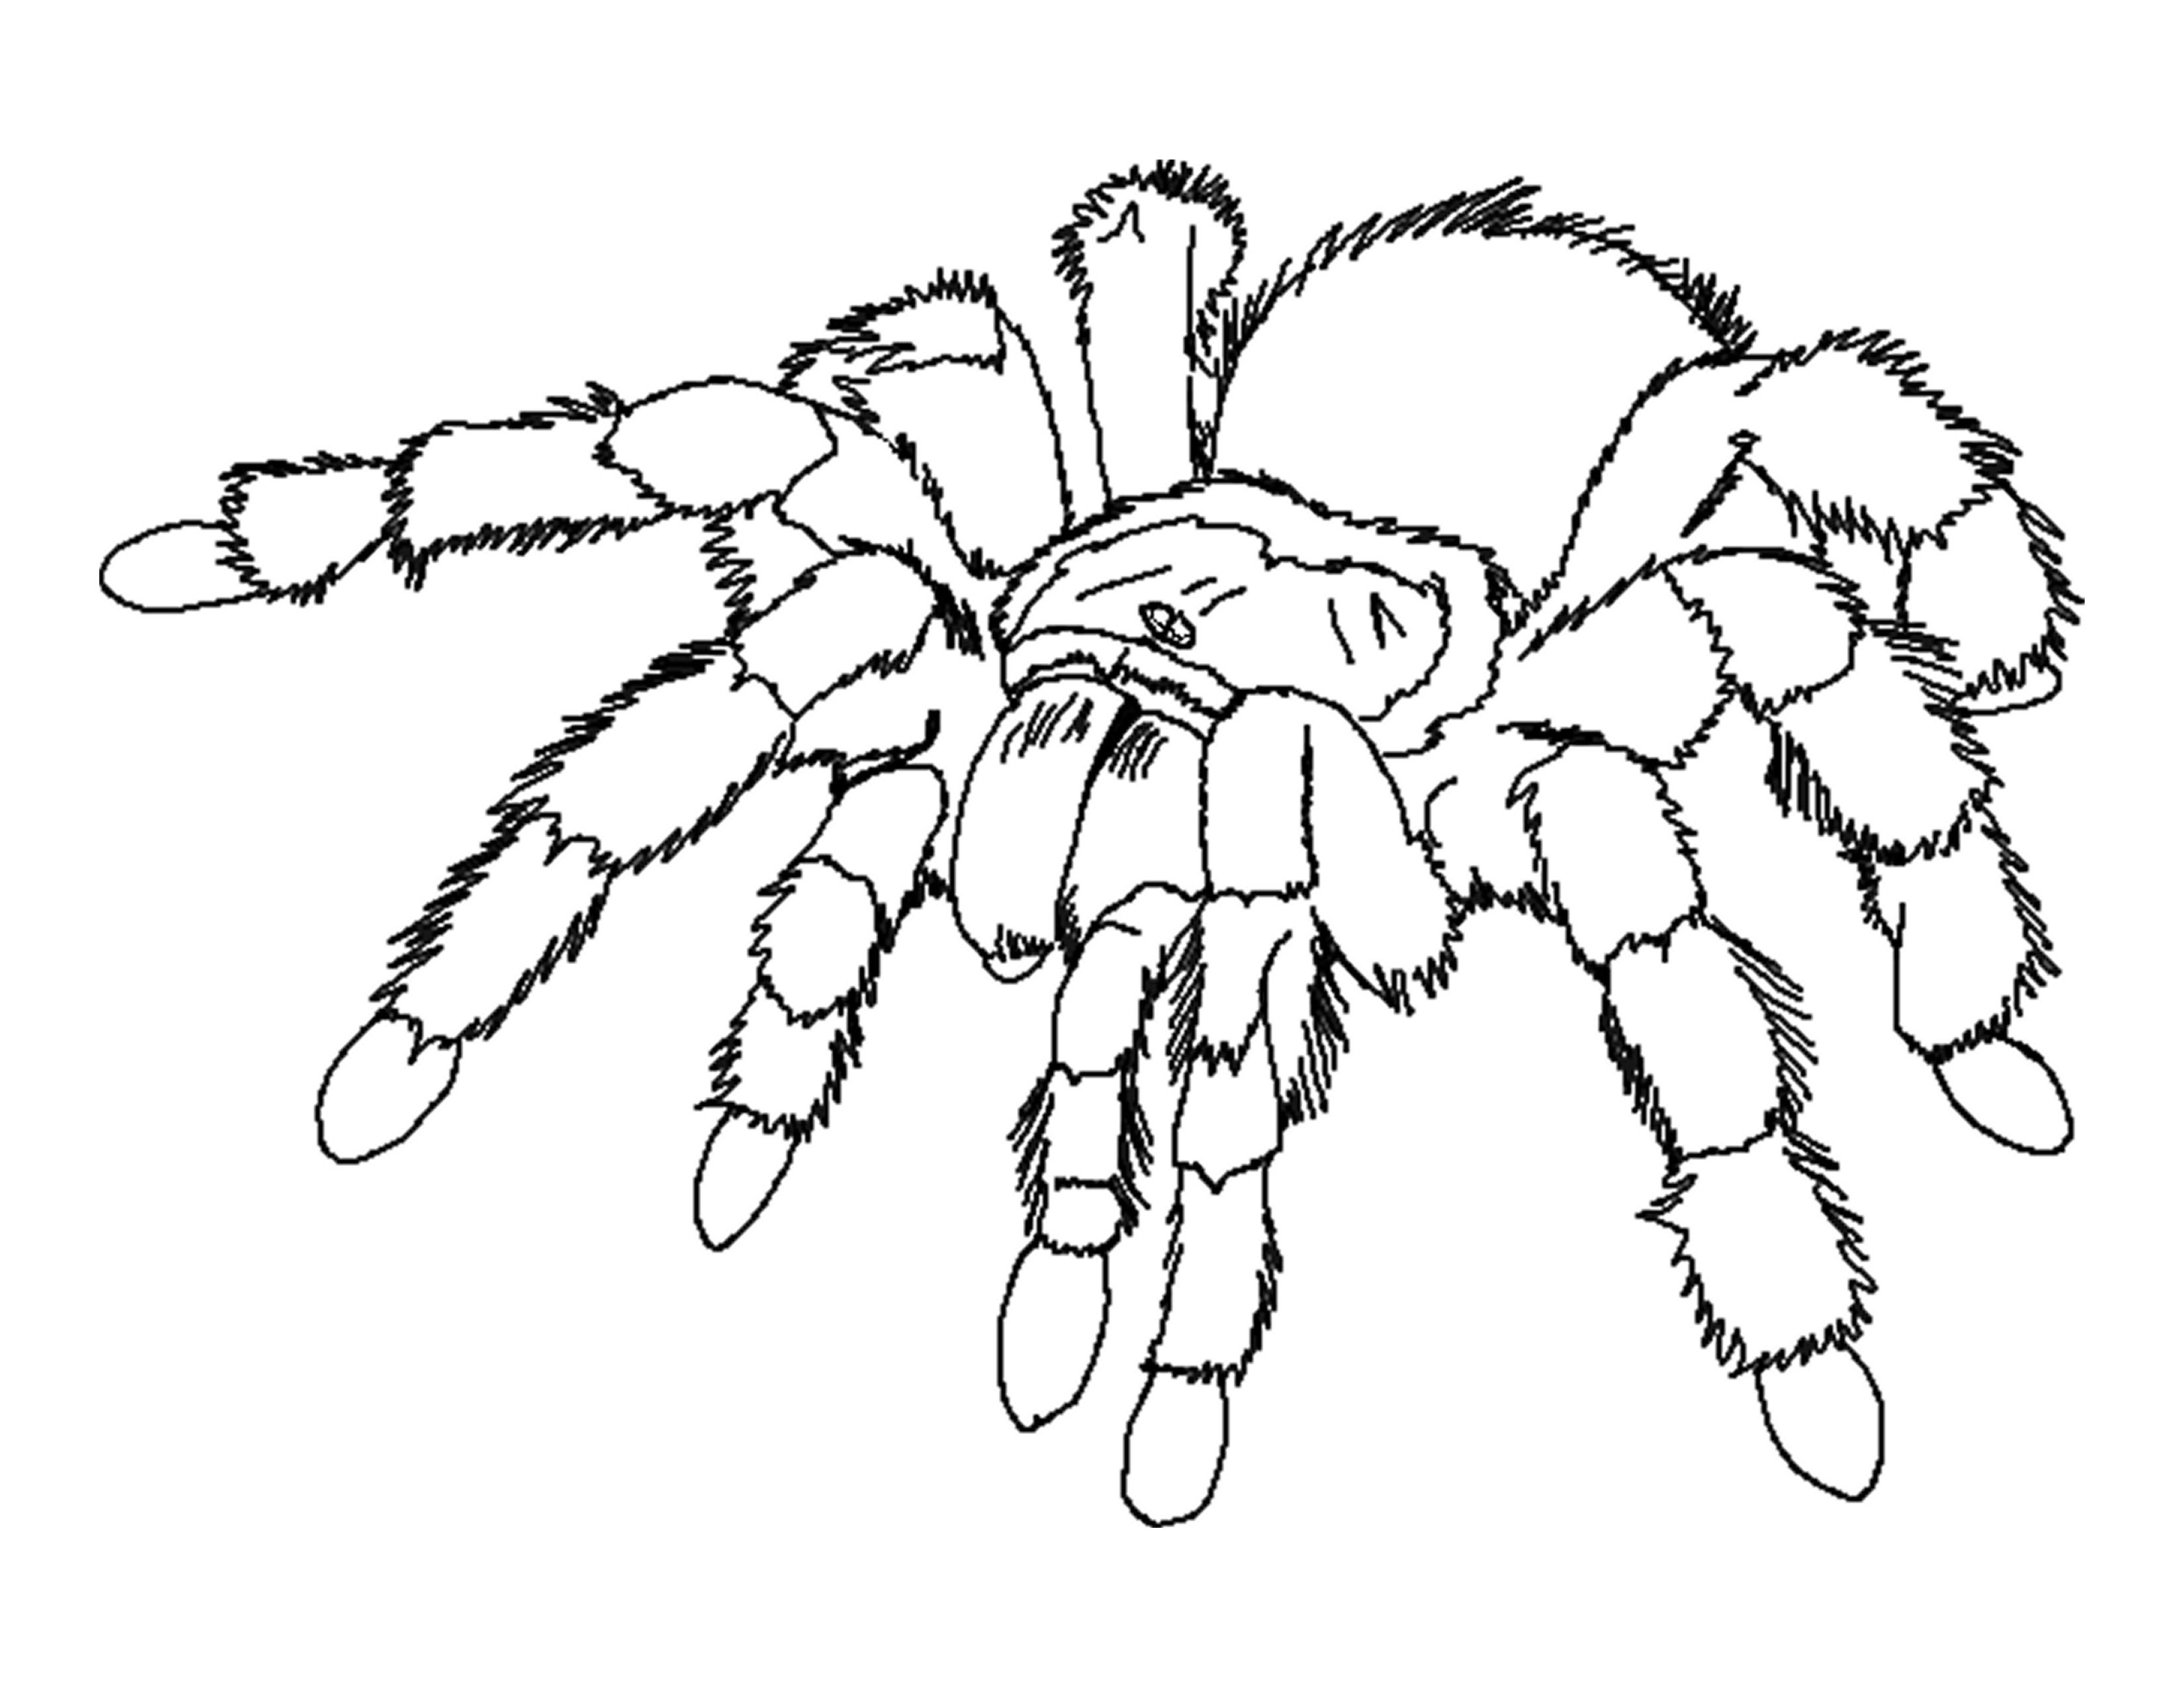 spider coloring page spider coloring pages to download and print for free spider coloring page